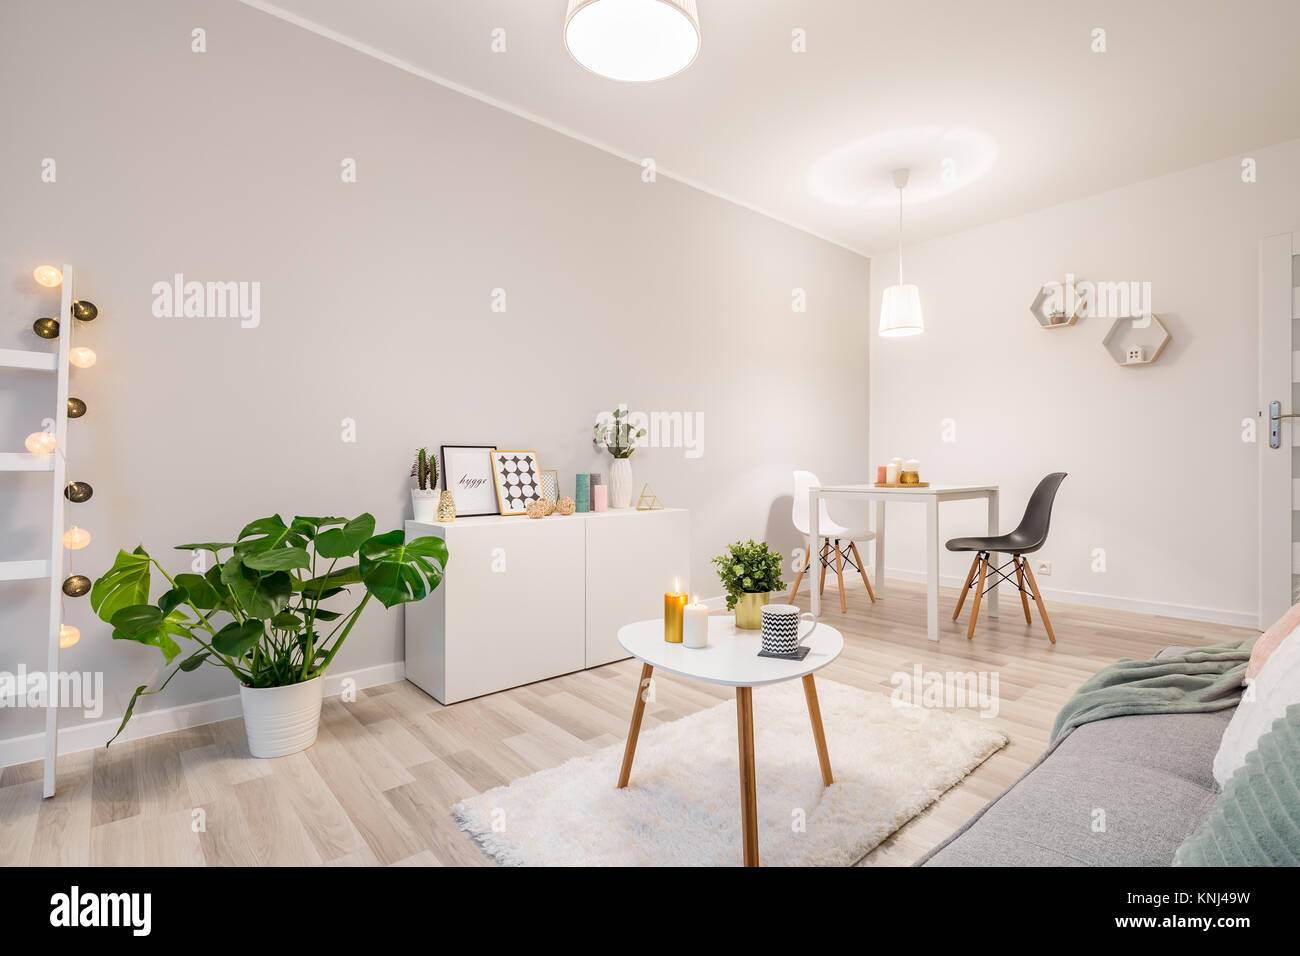 White living room in scandinavian style with couch, table and ...